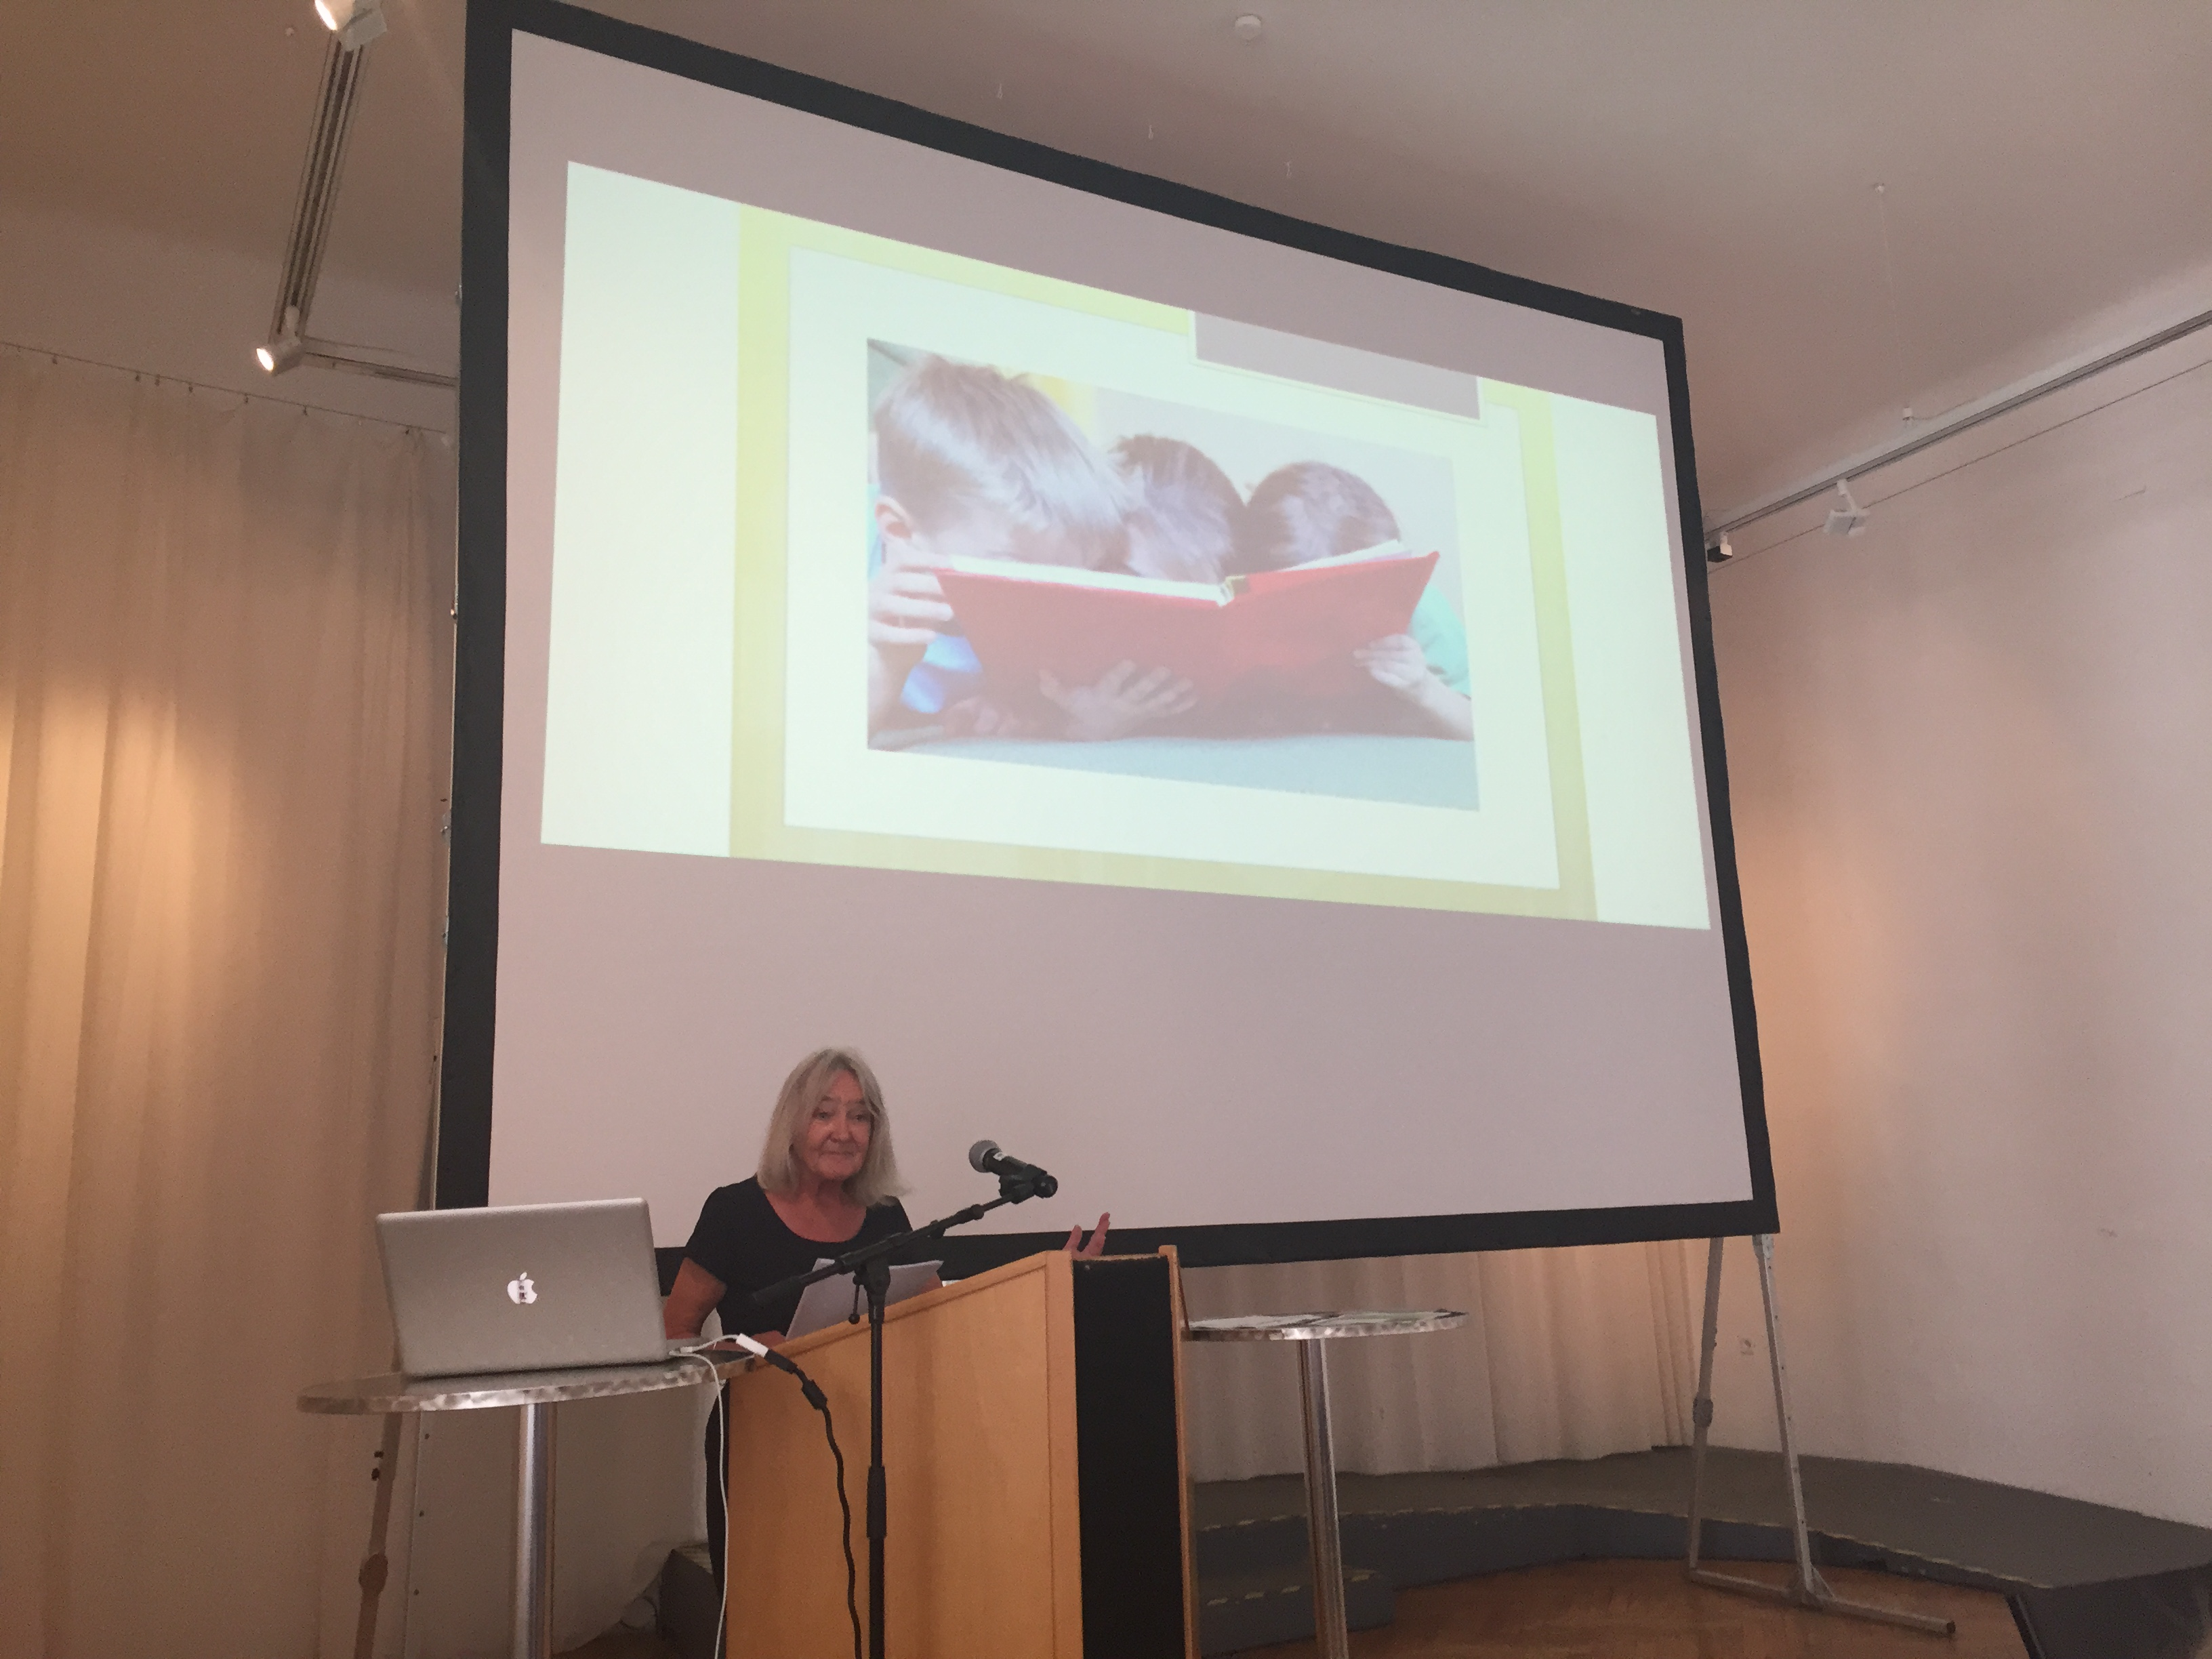 Beth Juncker on the meaning of Aesthetics in young people's meeting with art and culture